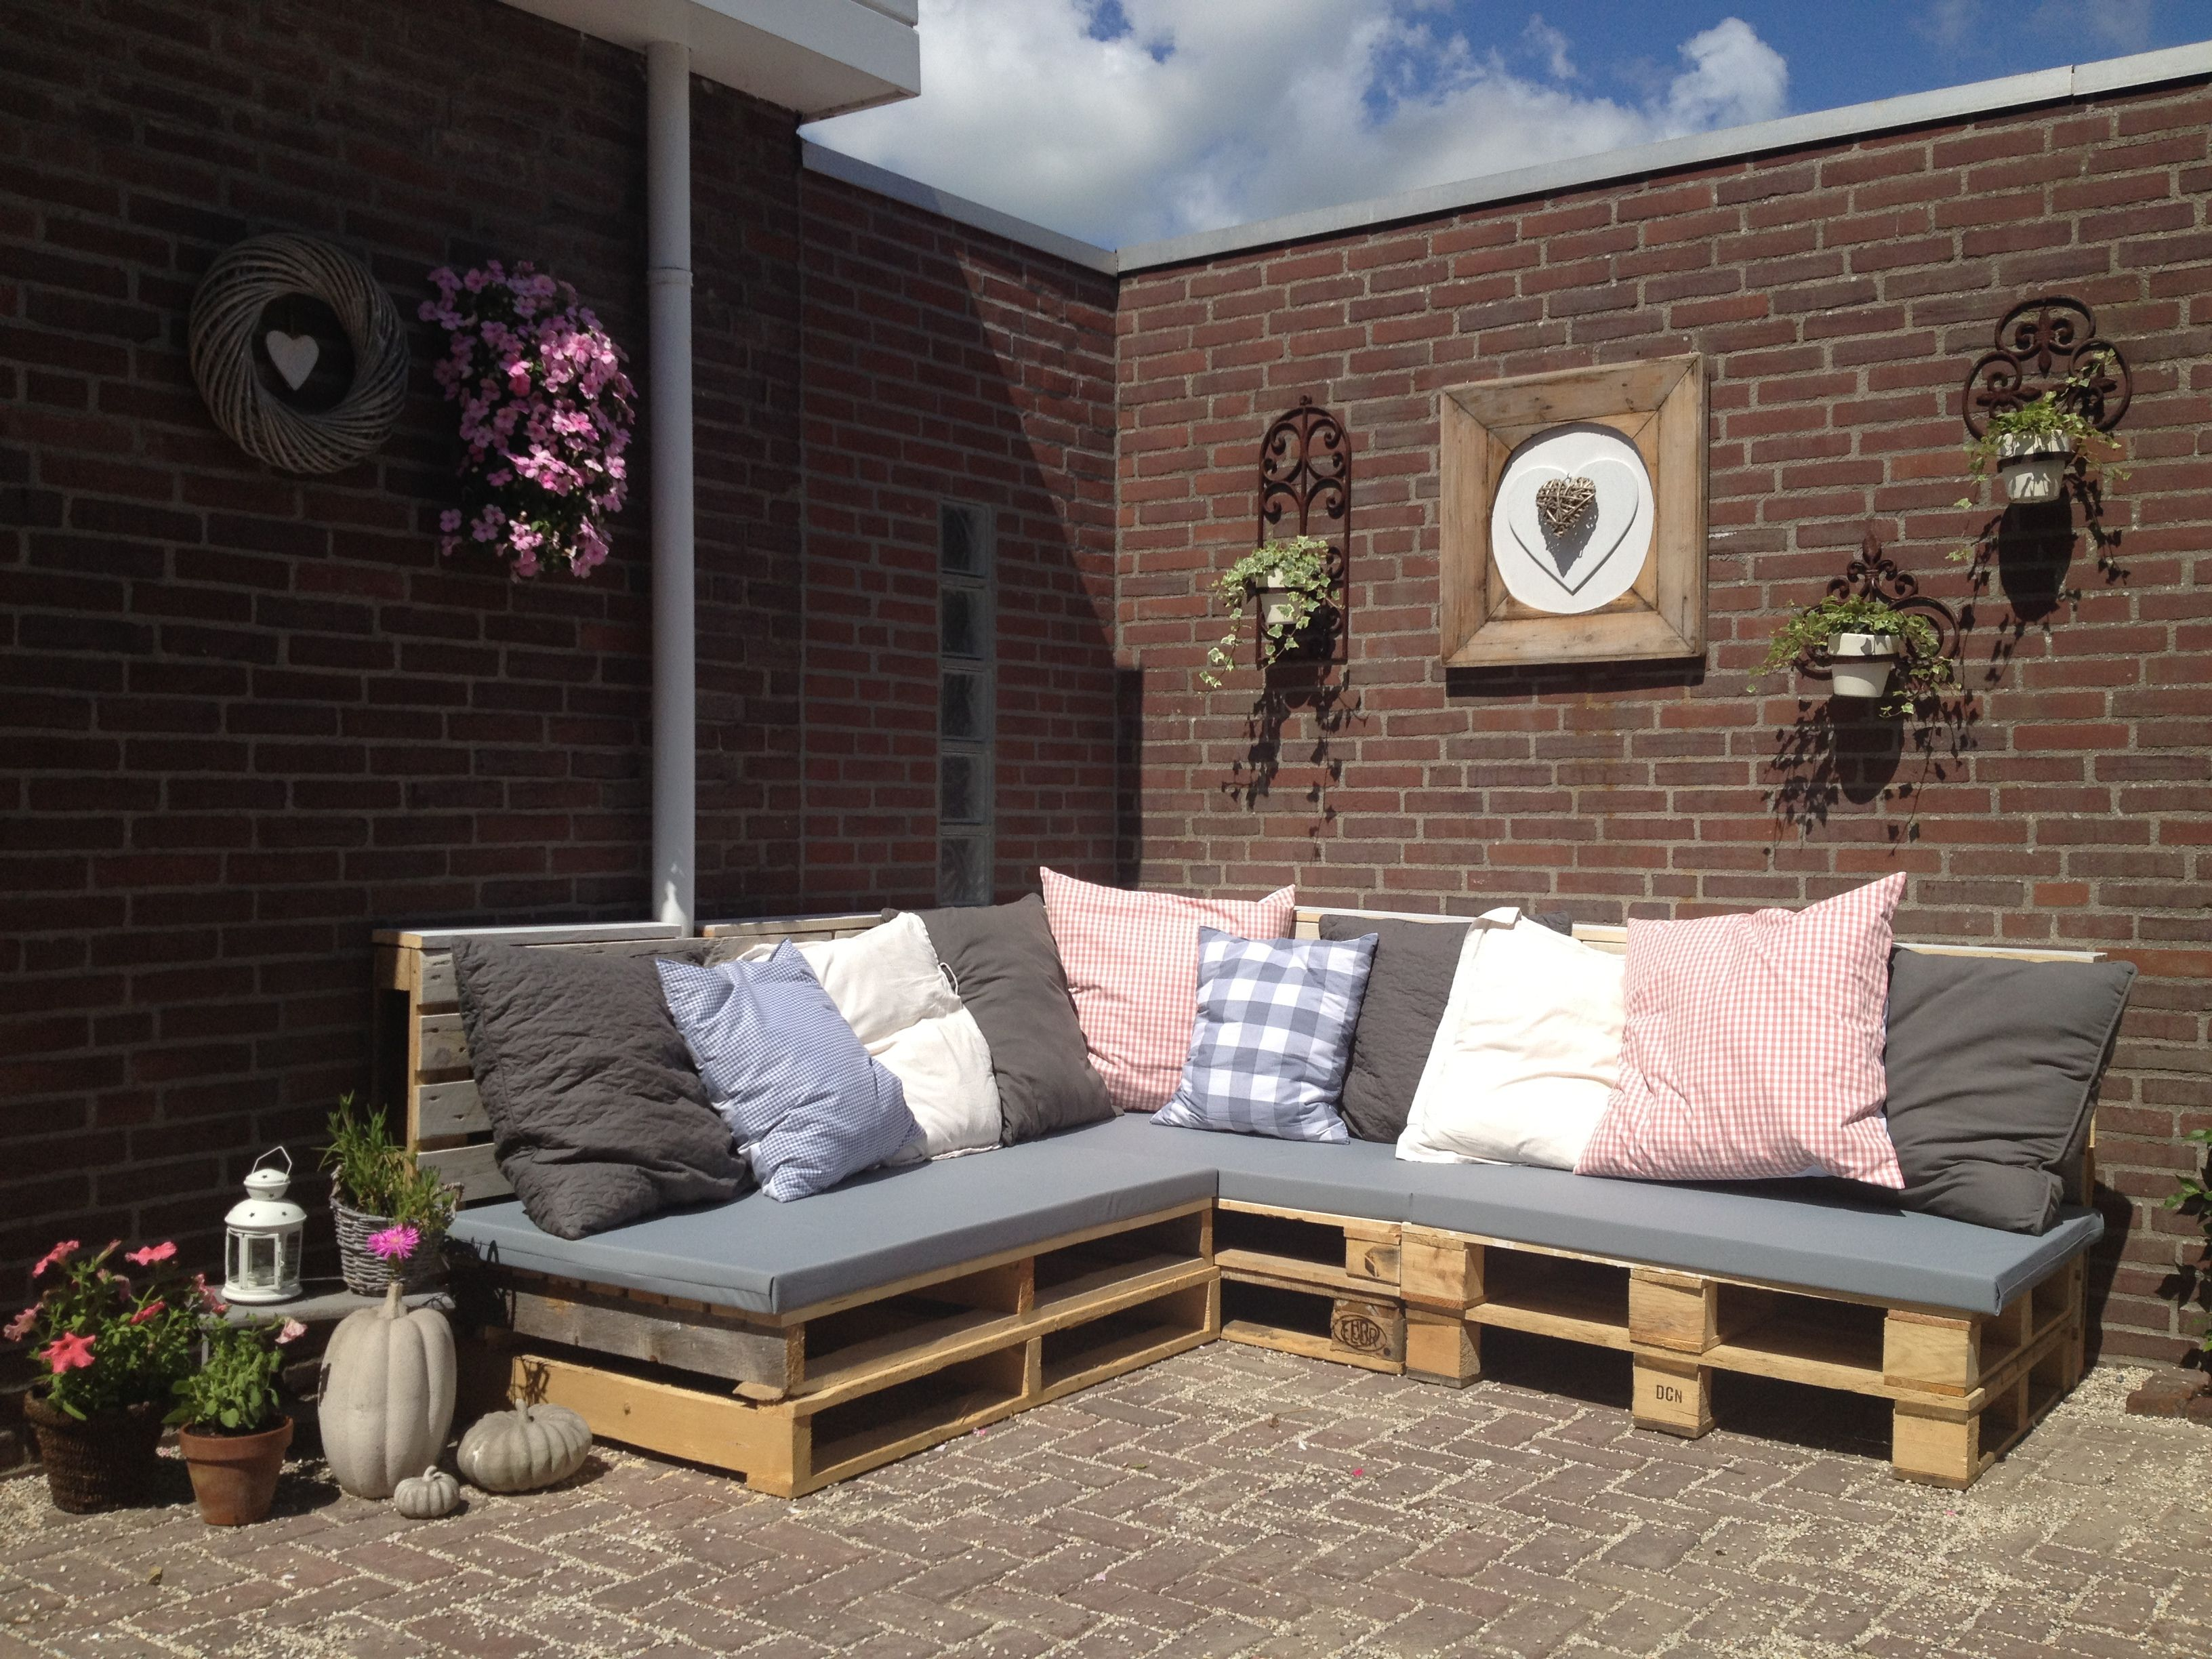 loungebank van pallets tuin pinterest tuin buiten en terras. Black Bedroom Furniture Sets. Home Design Ideas